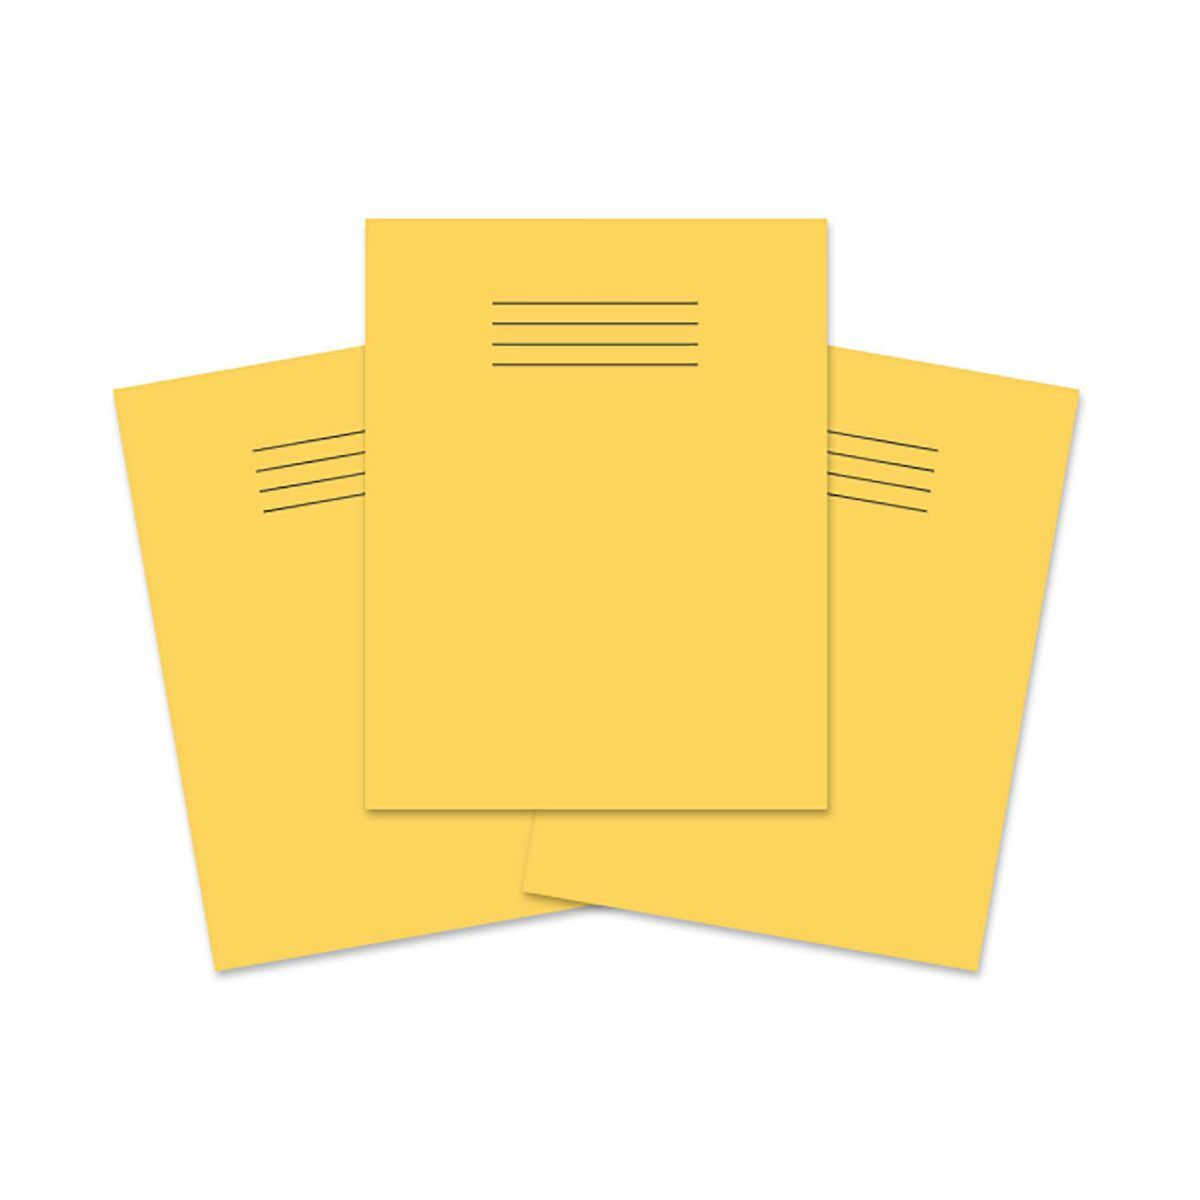 Exercise Book 9 inch x 7 Inch 80 Pages 8mm Ruled and Margin Pack of 100 Yellow